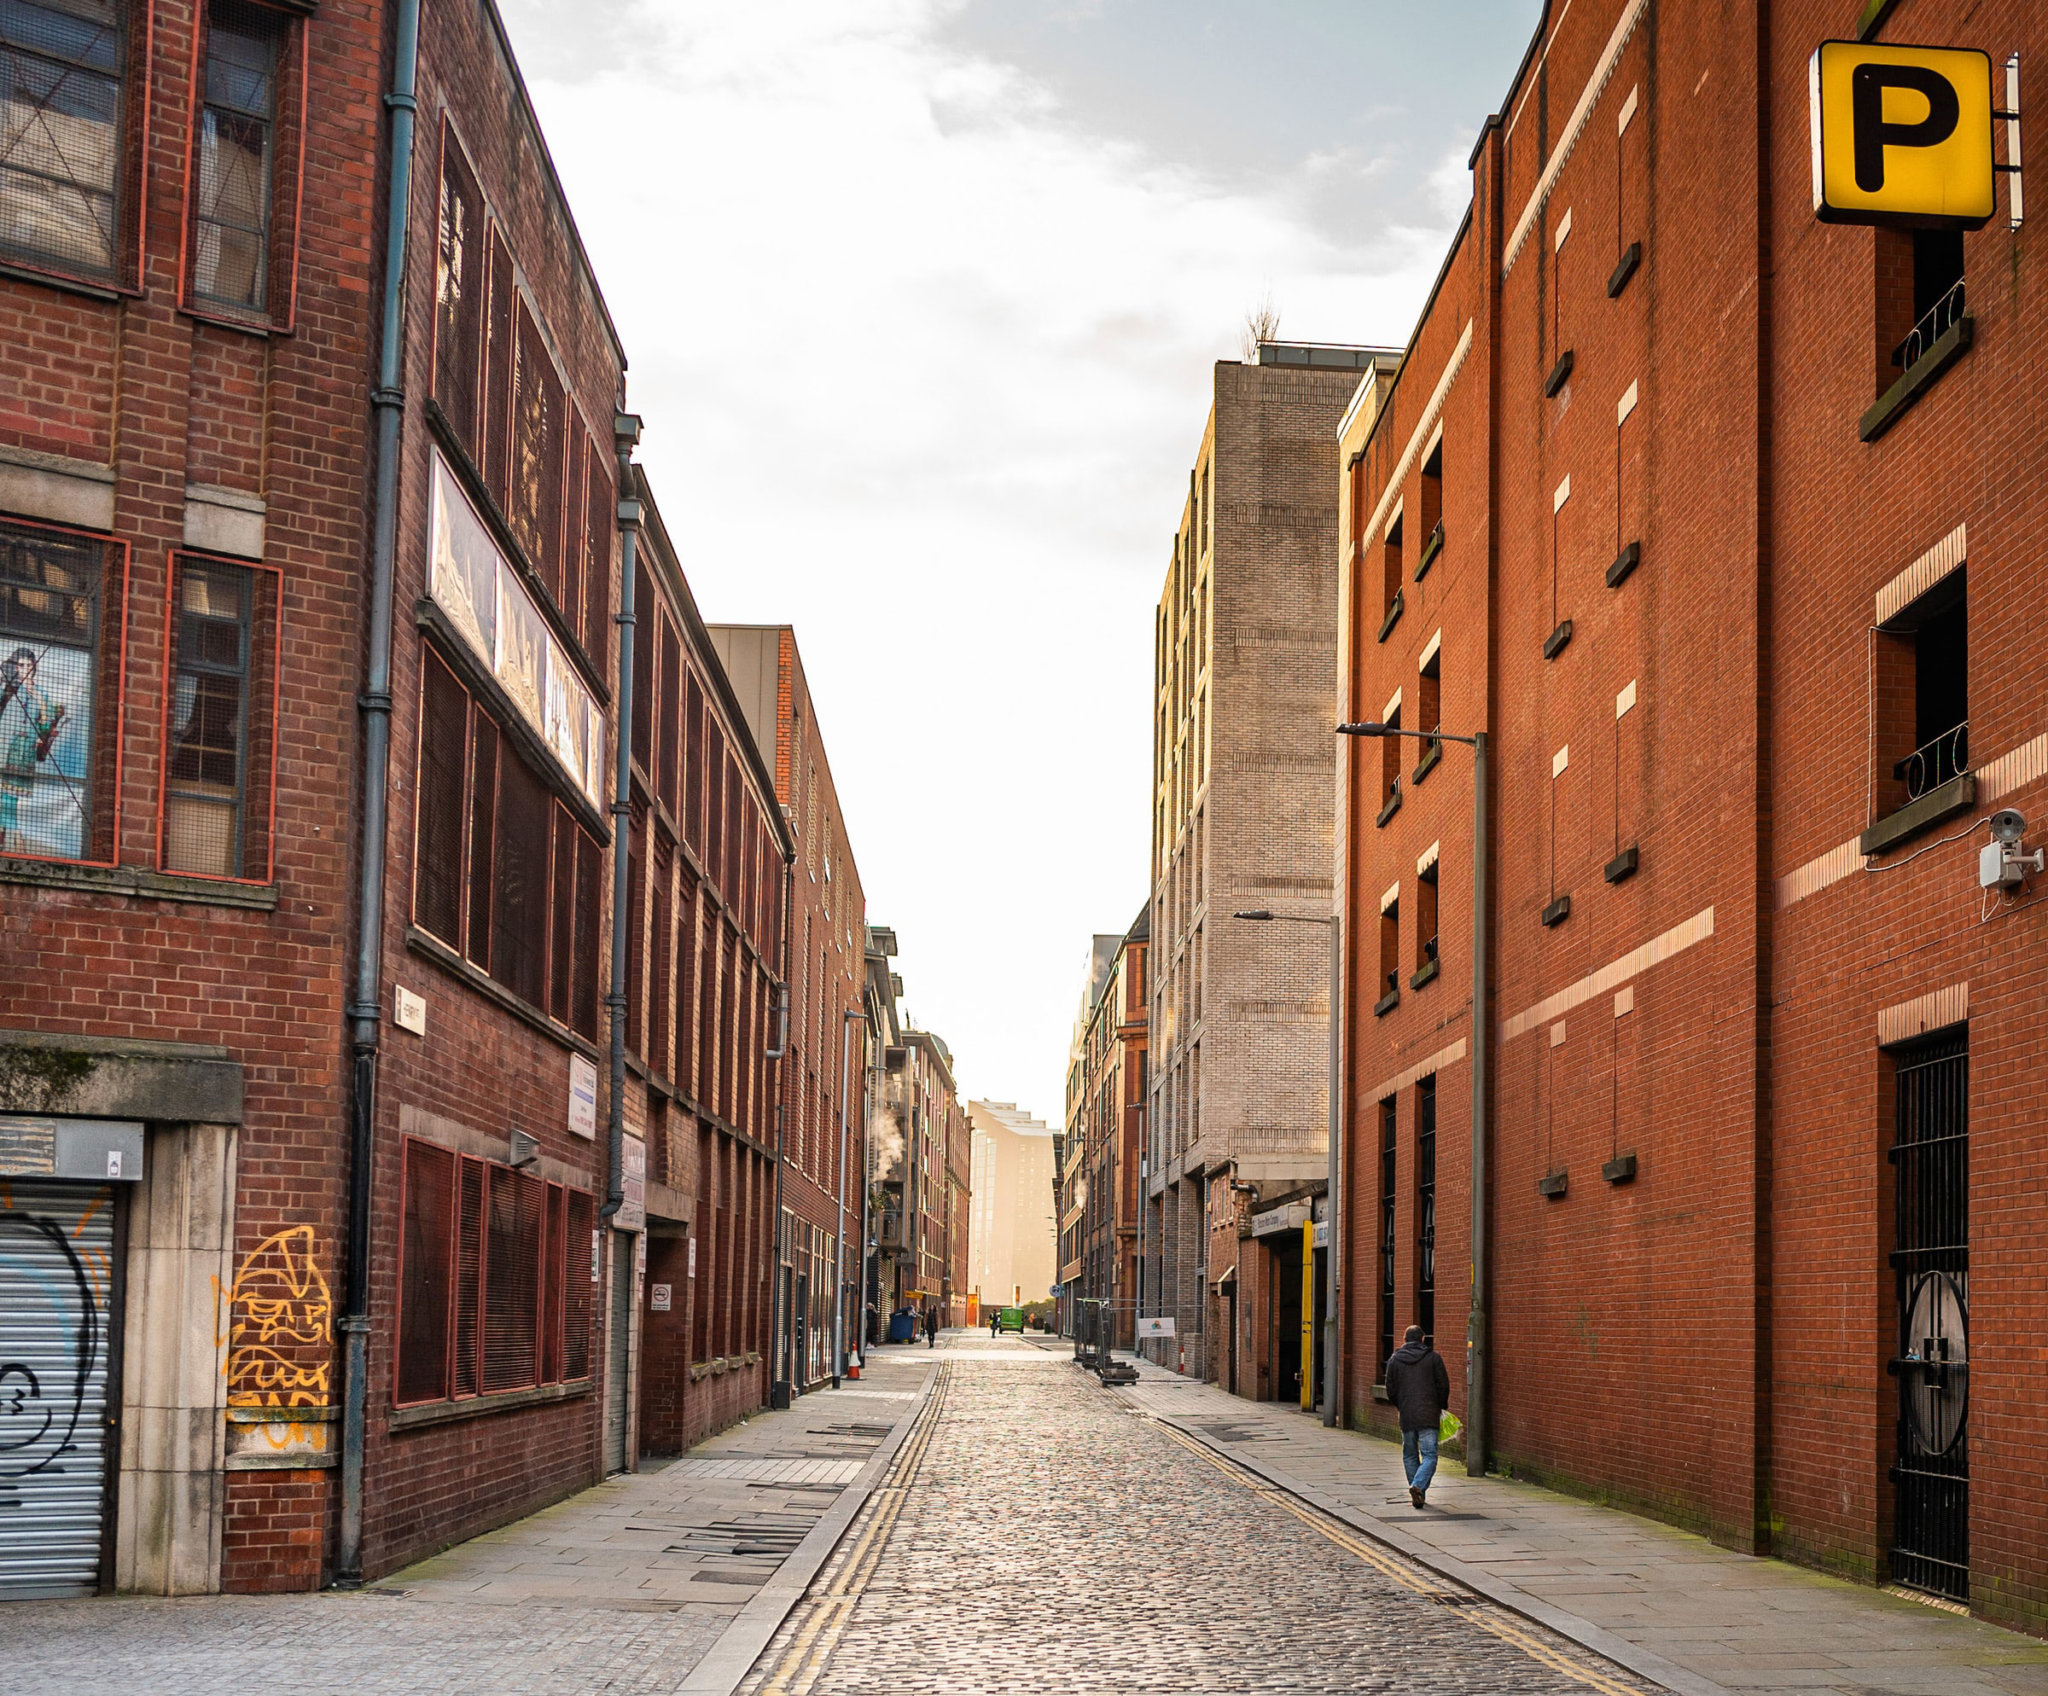 Local Ancoats street in Manchester